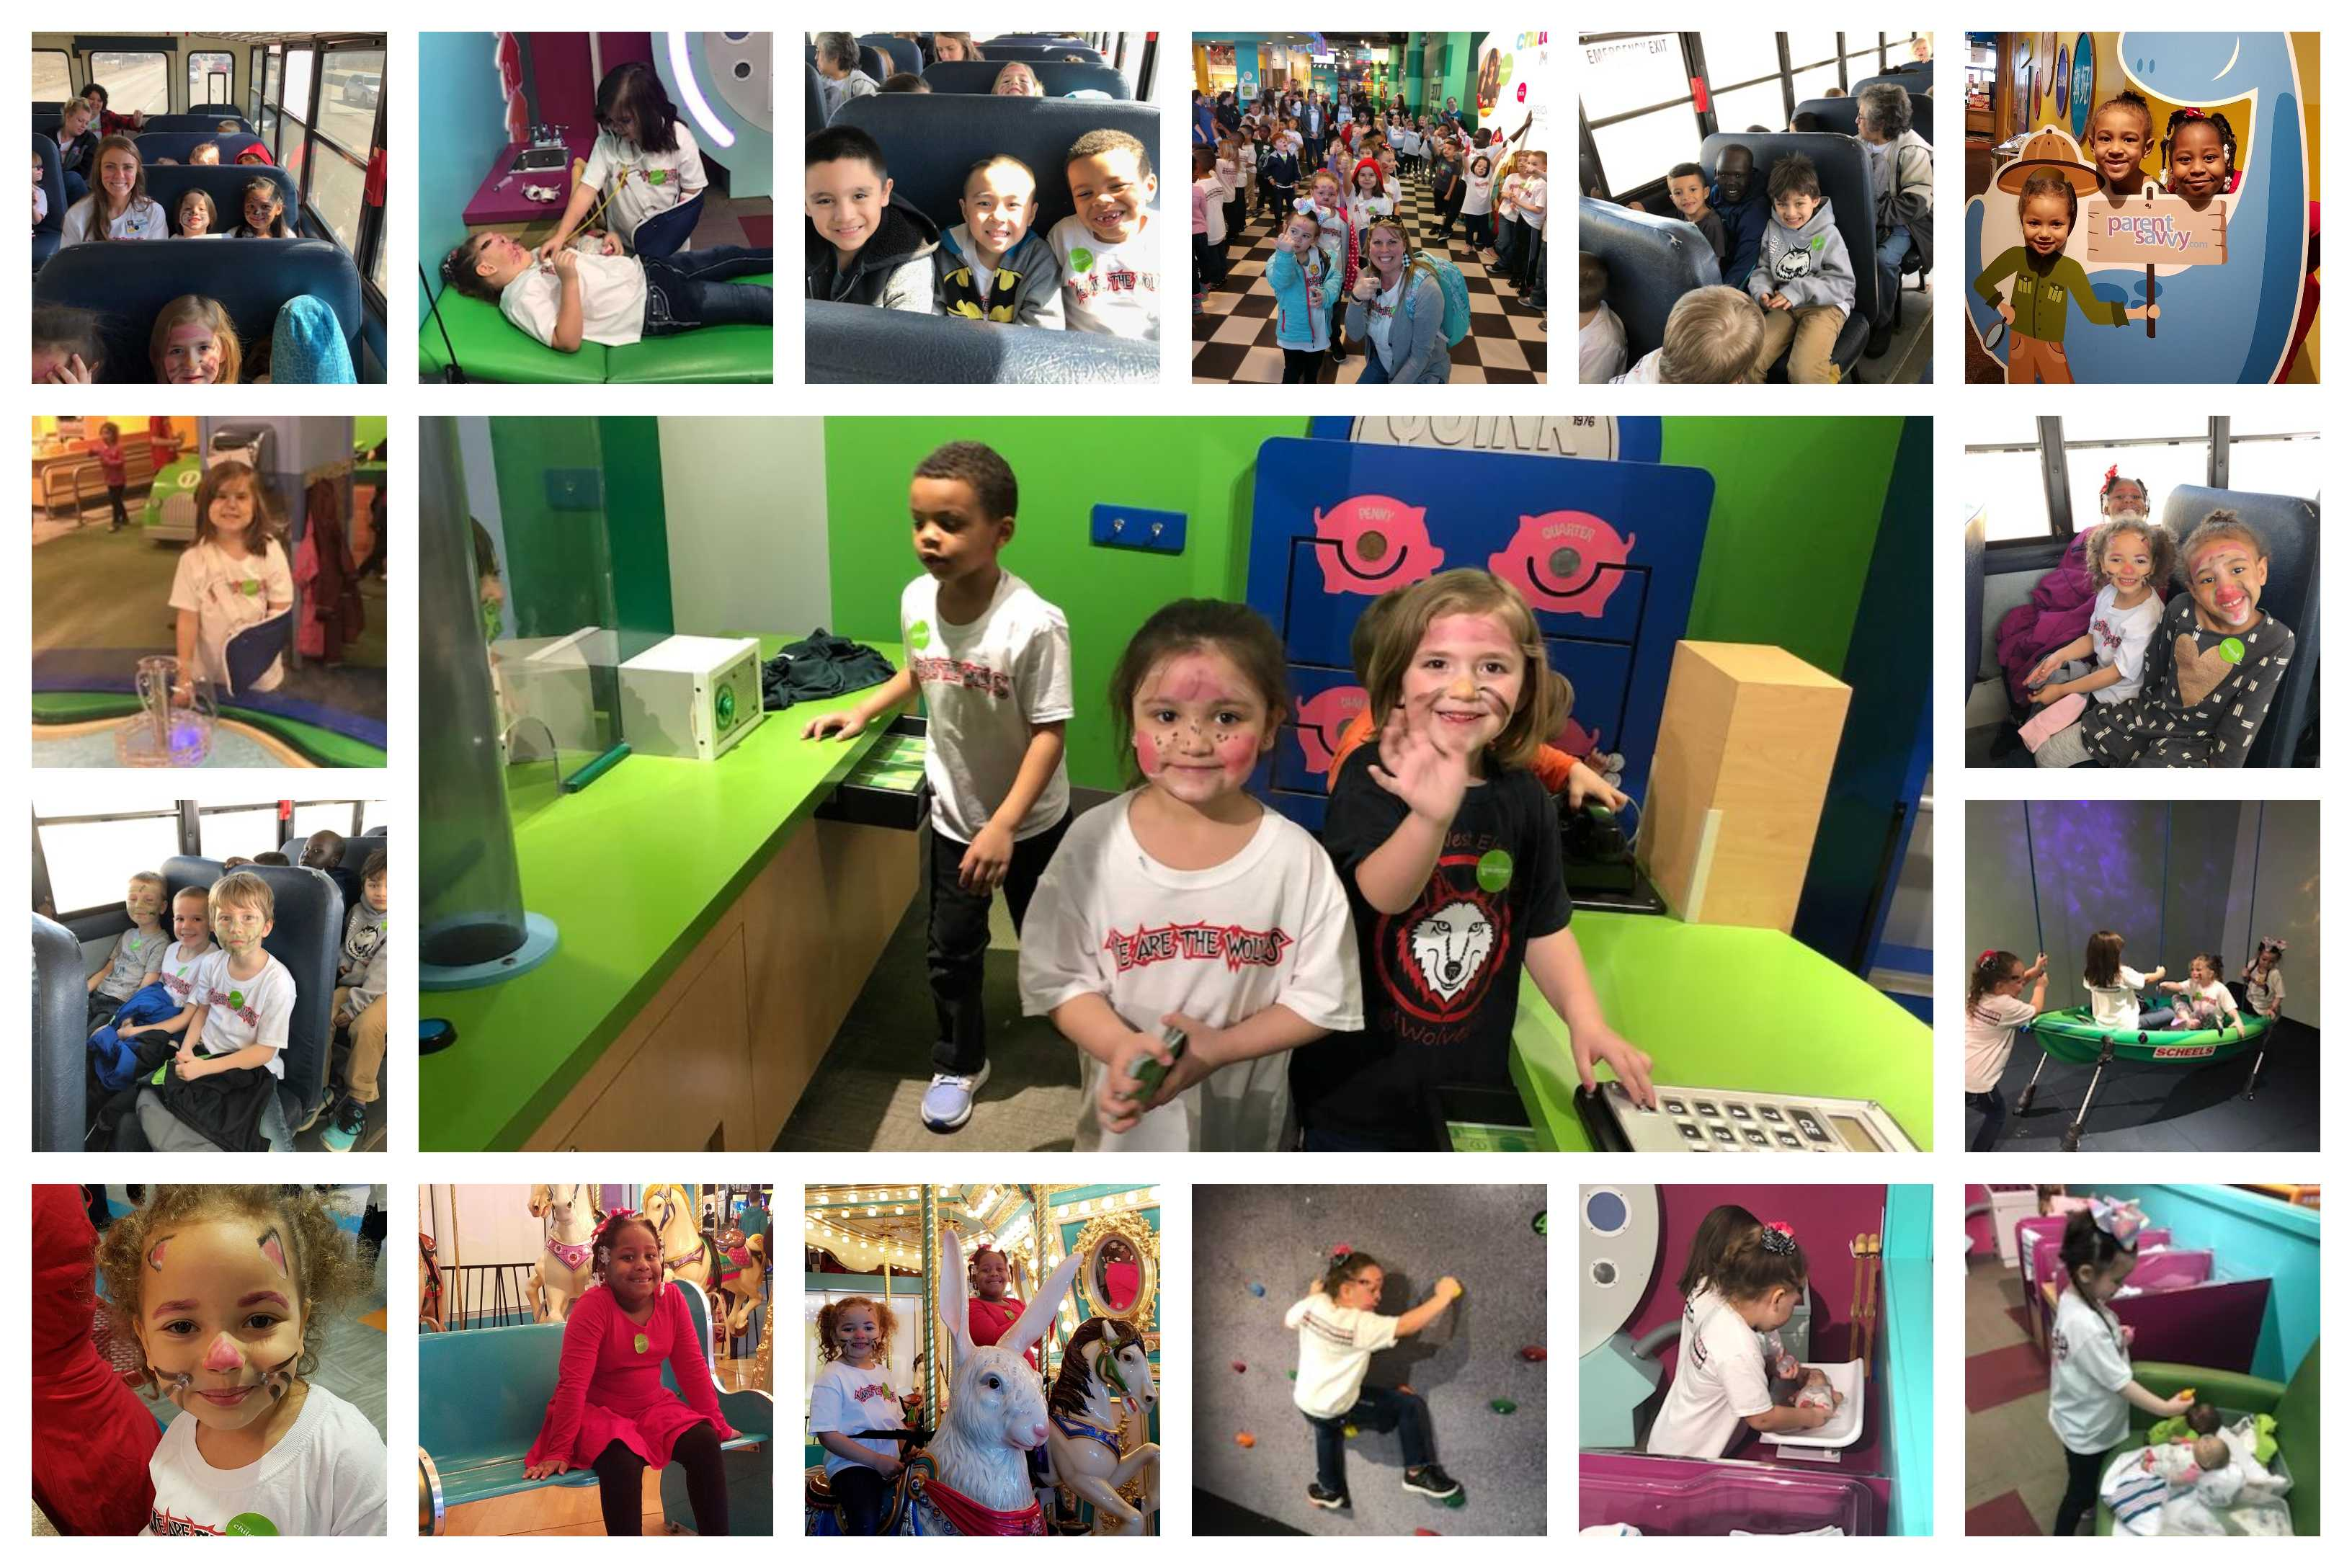 Kindergarteners enjoy a day at the Omaha Children's Museum.